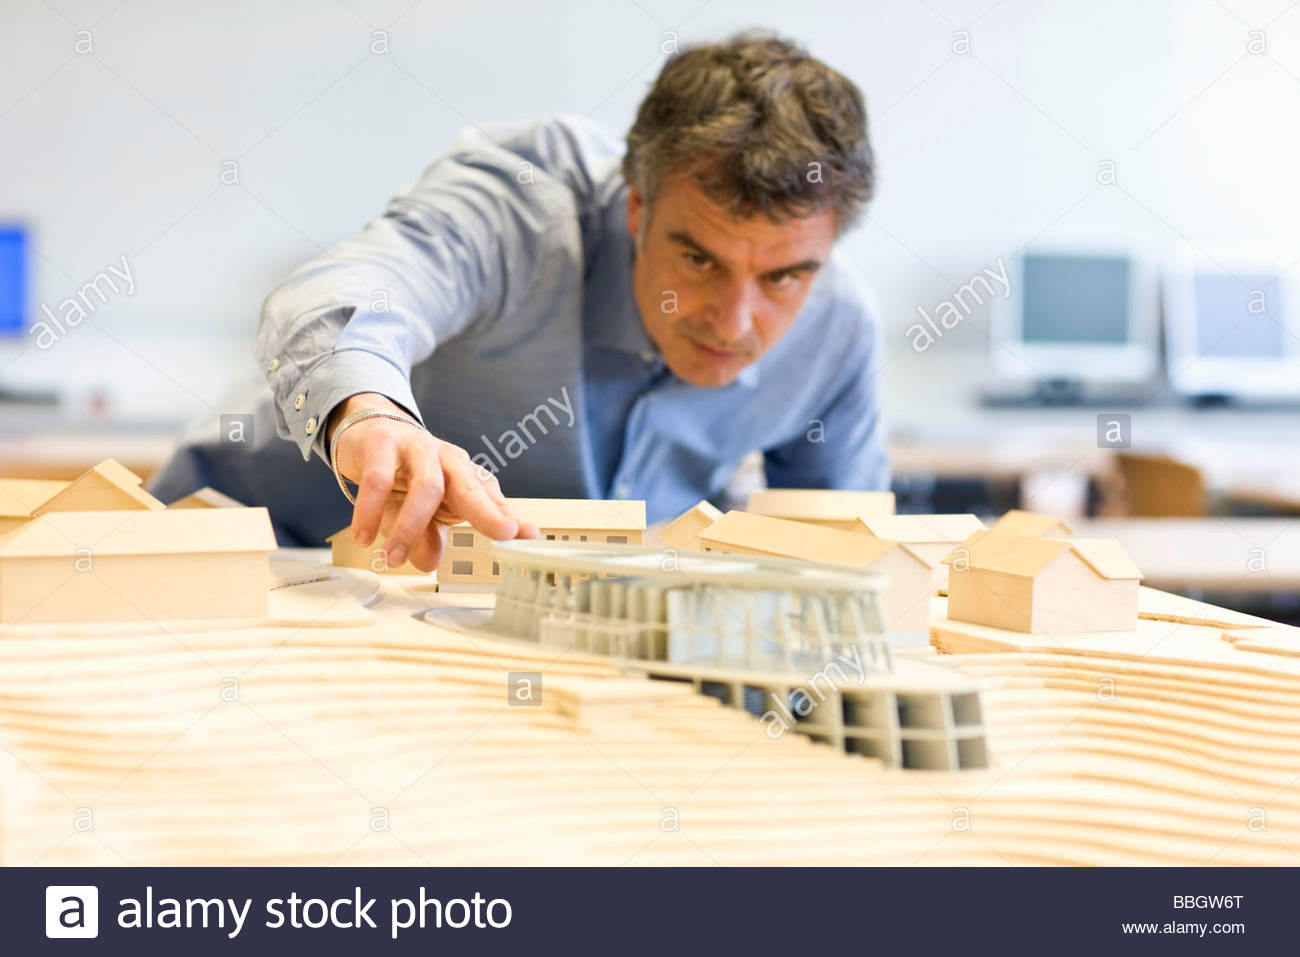 Mature man scrutinizing an architectural model - Stock Image